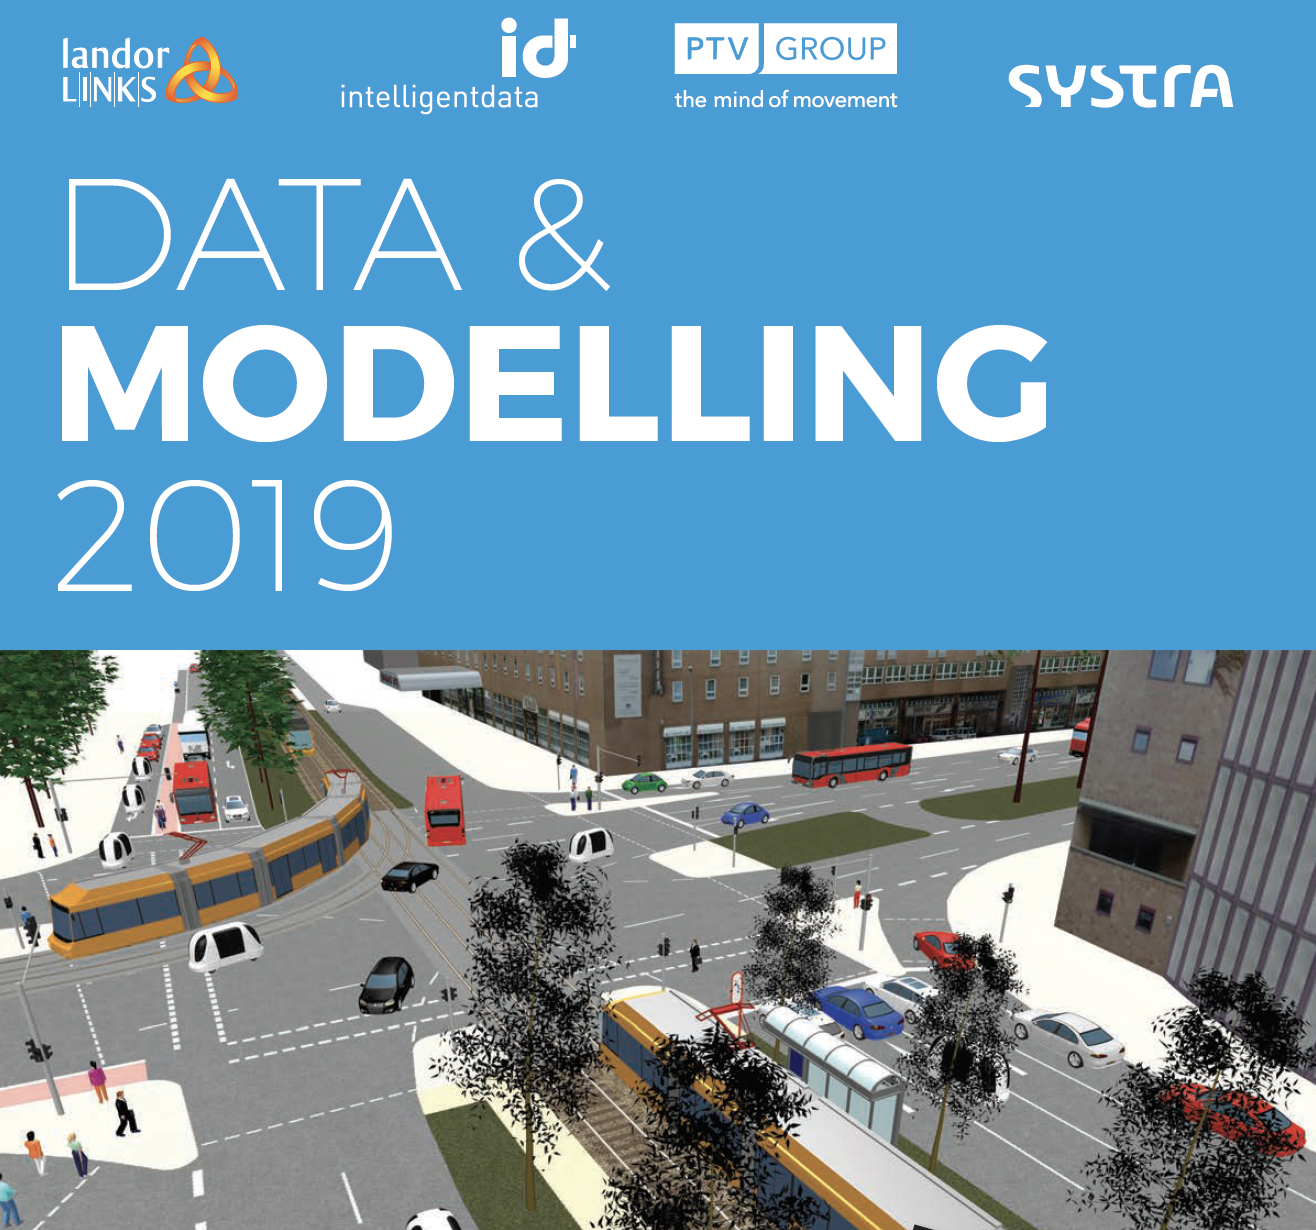 Data and Modelling 2019